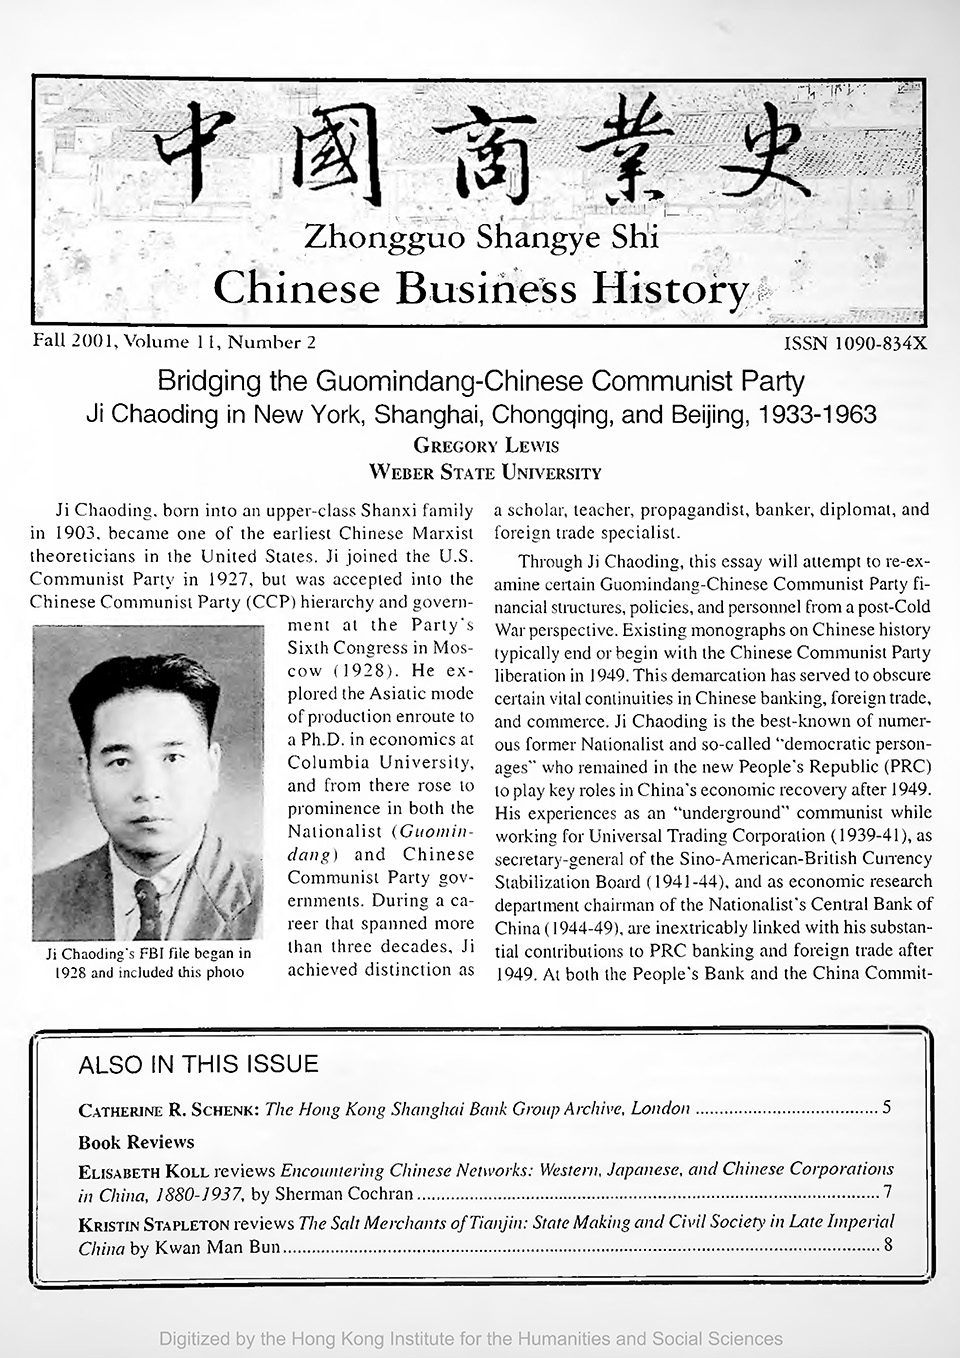 Cover of Chinese Business History Journal Volume 11, Number 2